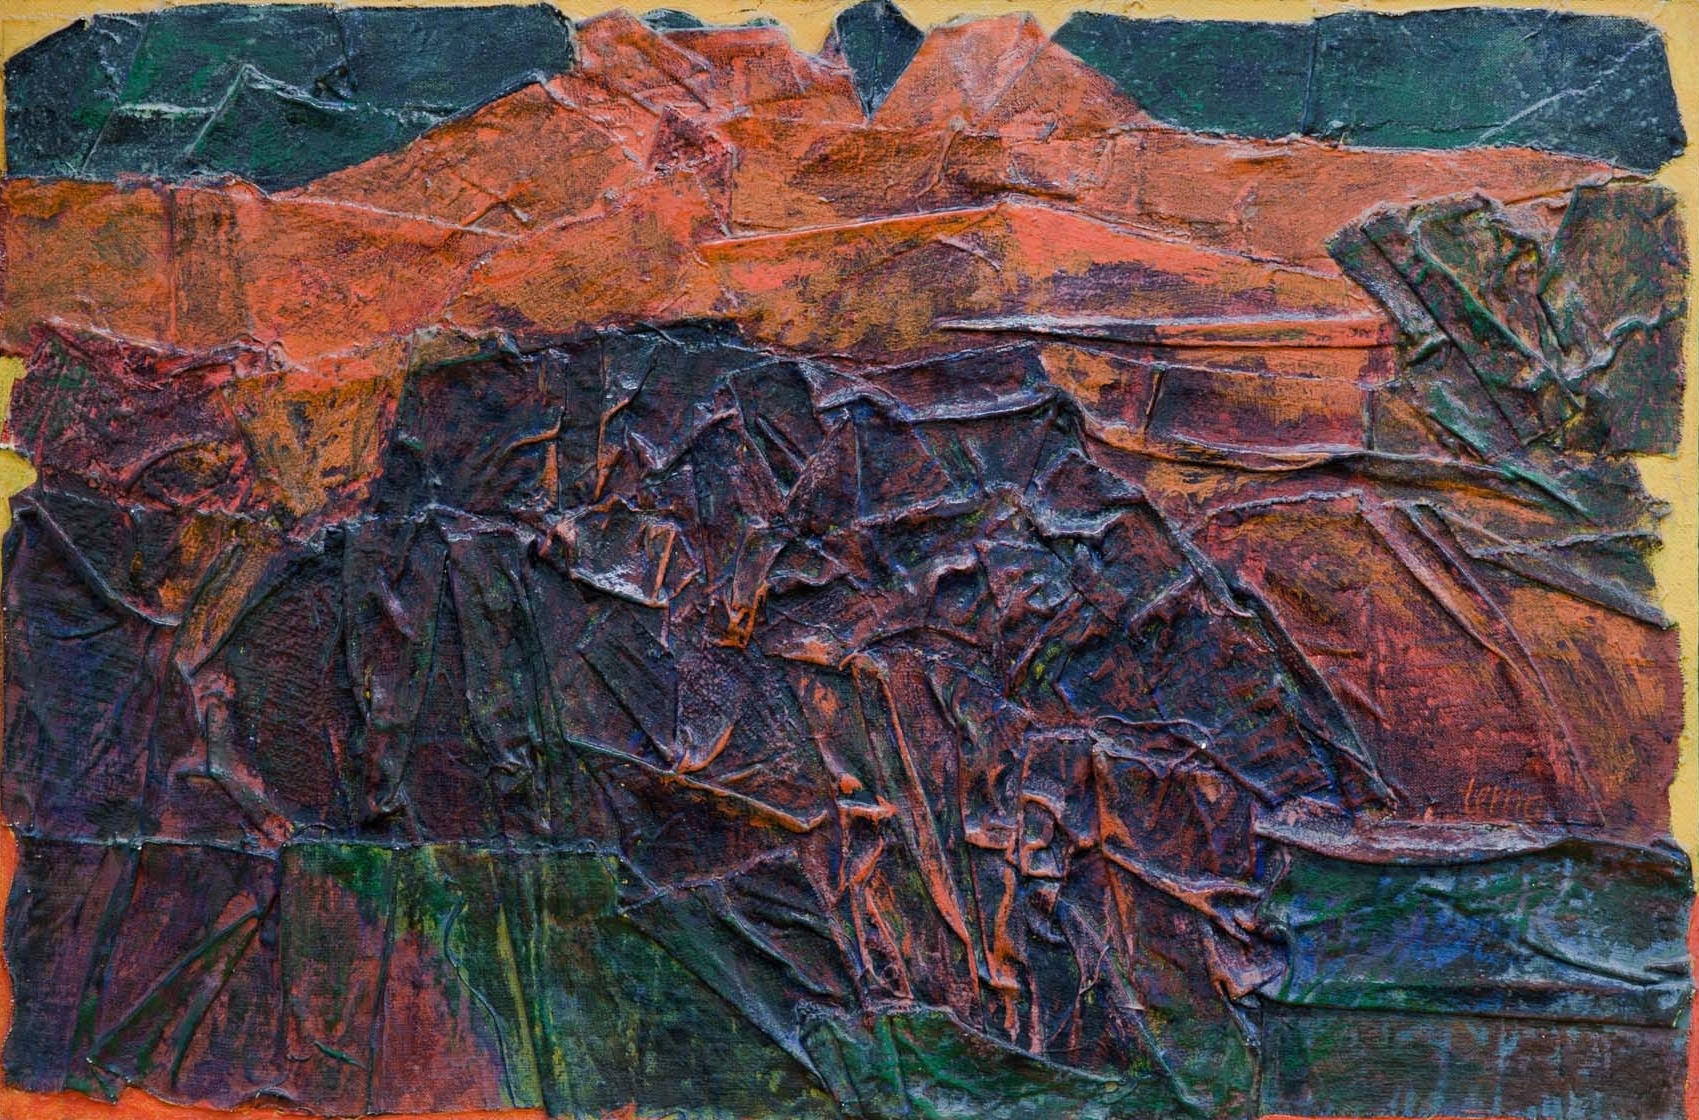 Craggy Cliff , July 1966, Canvas construction and acrylic on masonite, 24 x 36 in